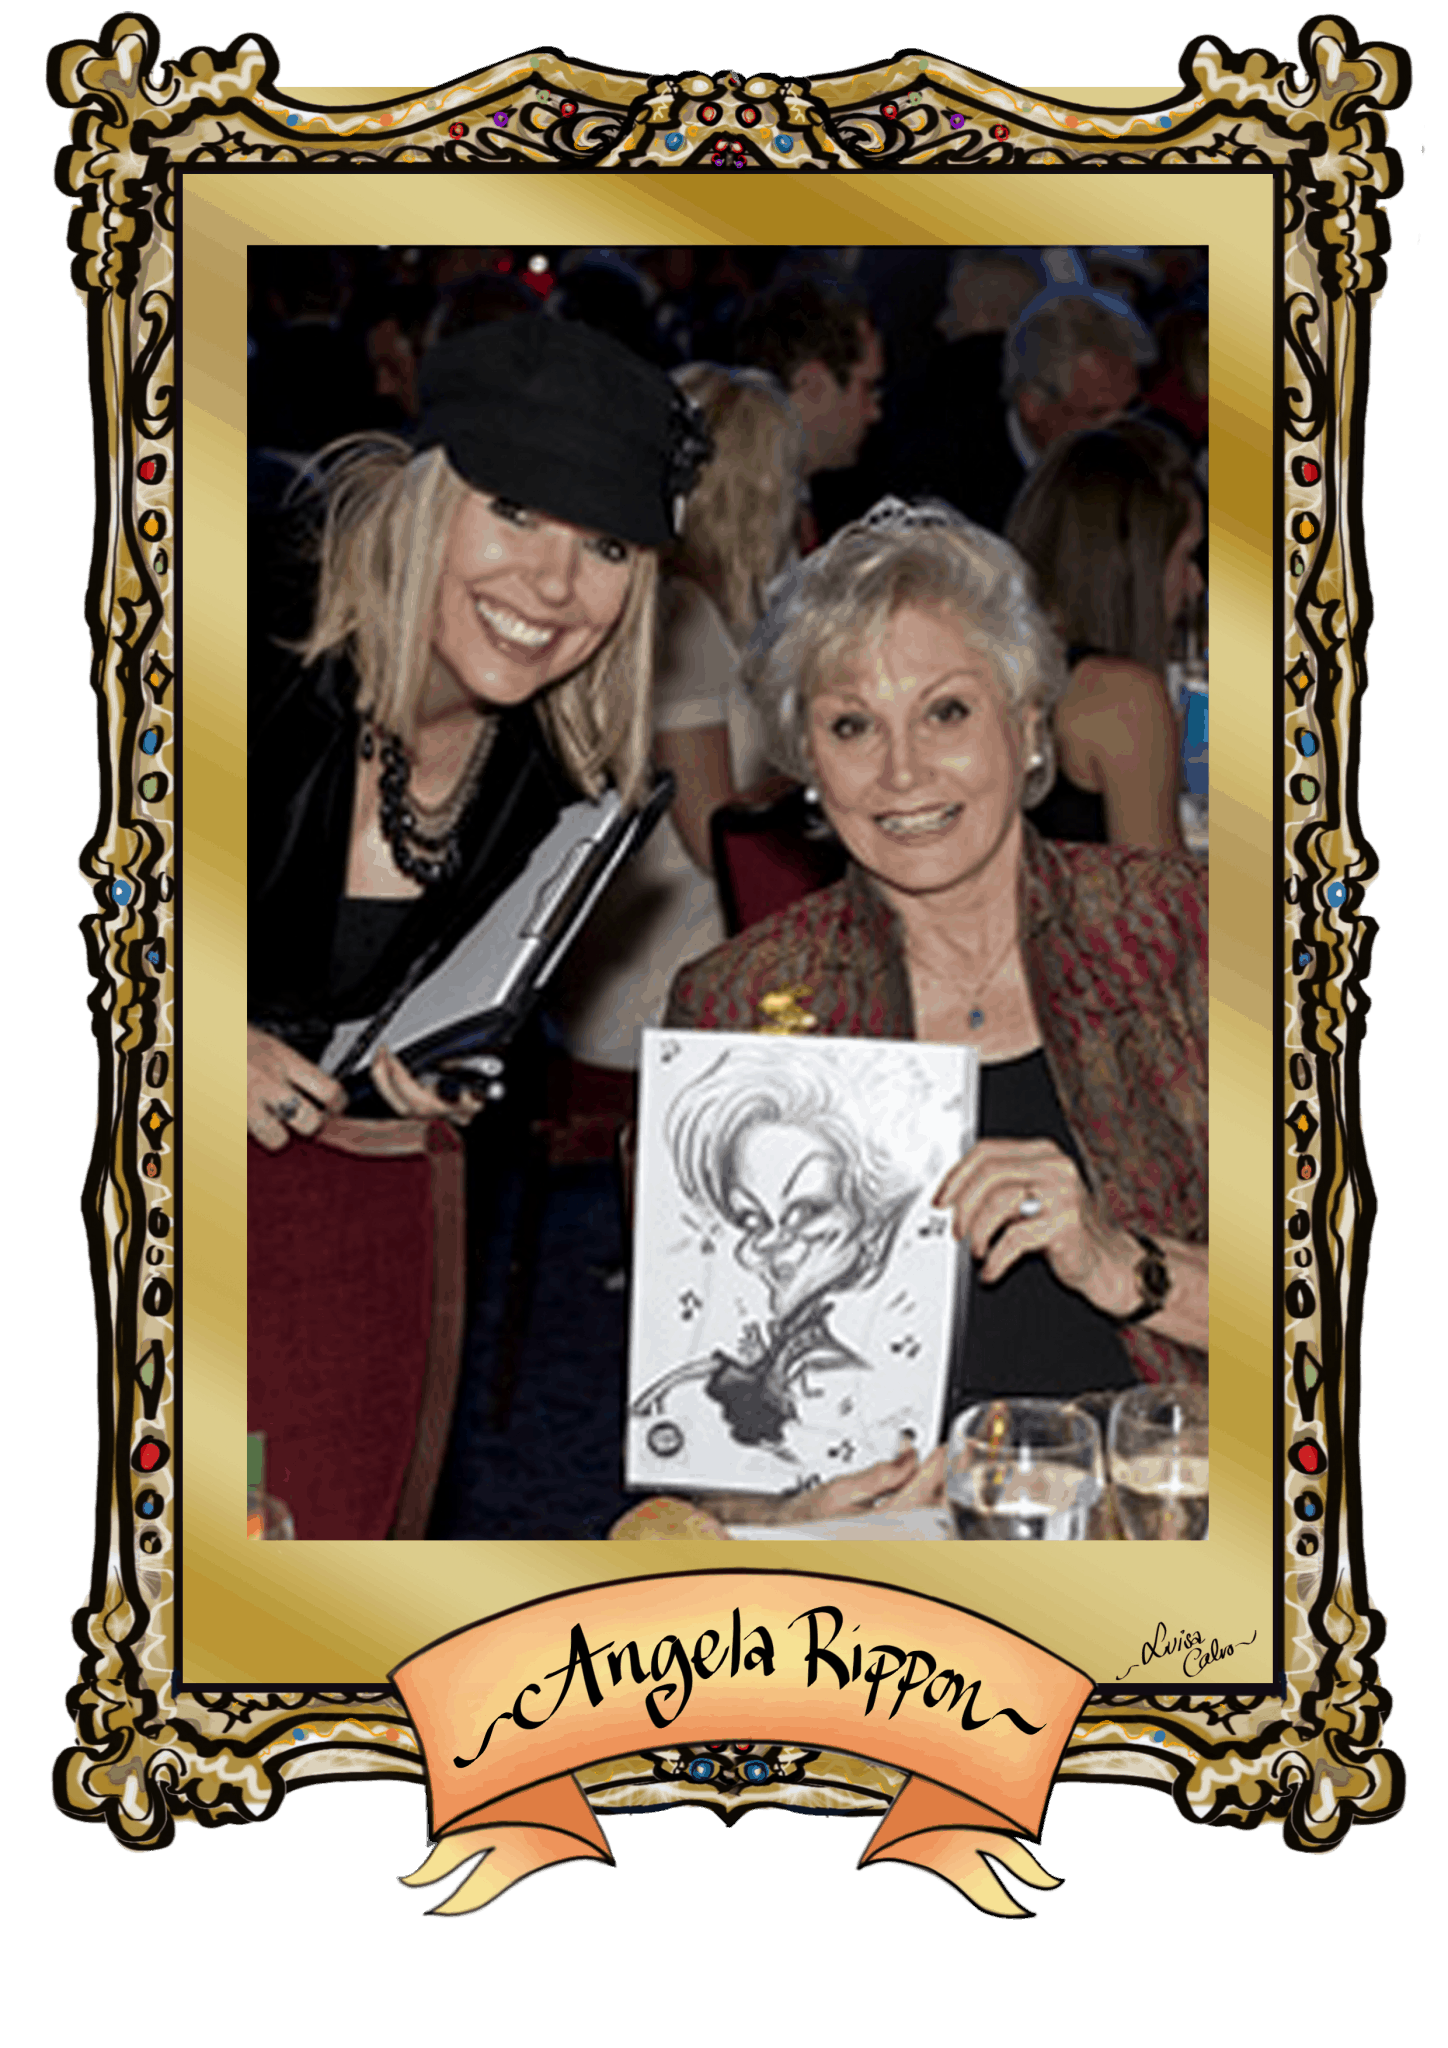 ANGELA RIPPON CARICATURE – BY LUISA CALVO